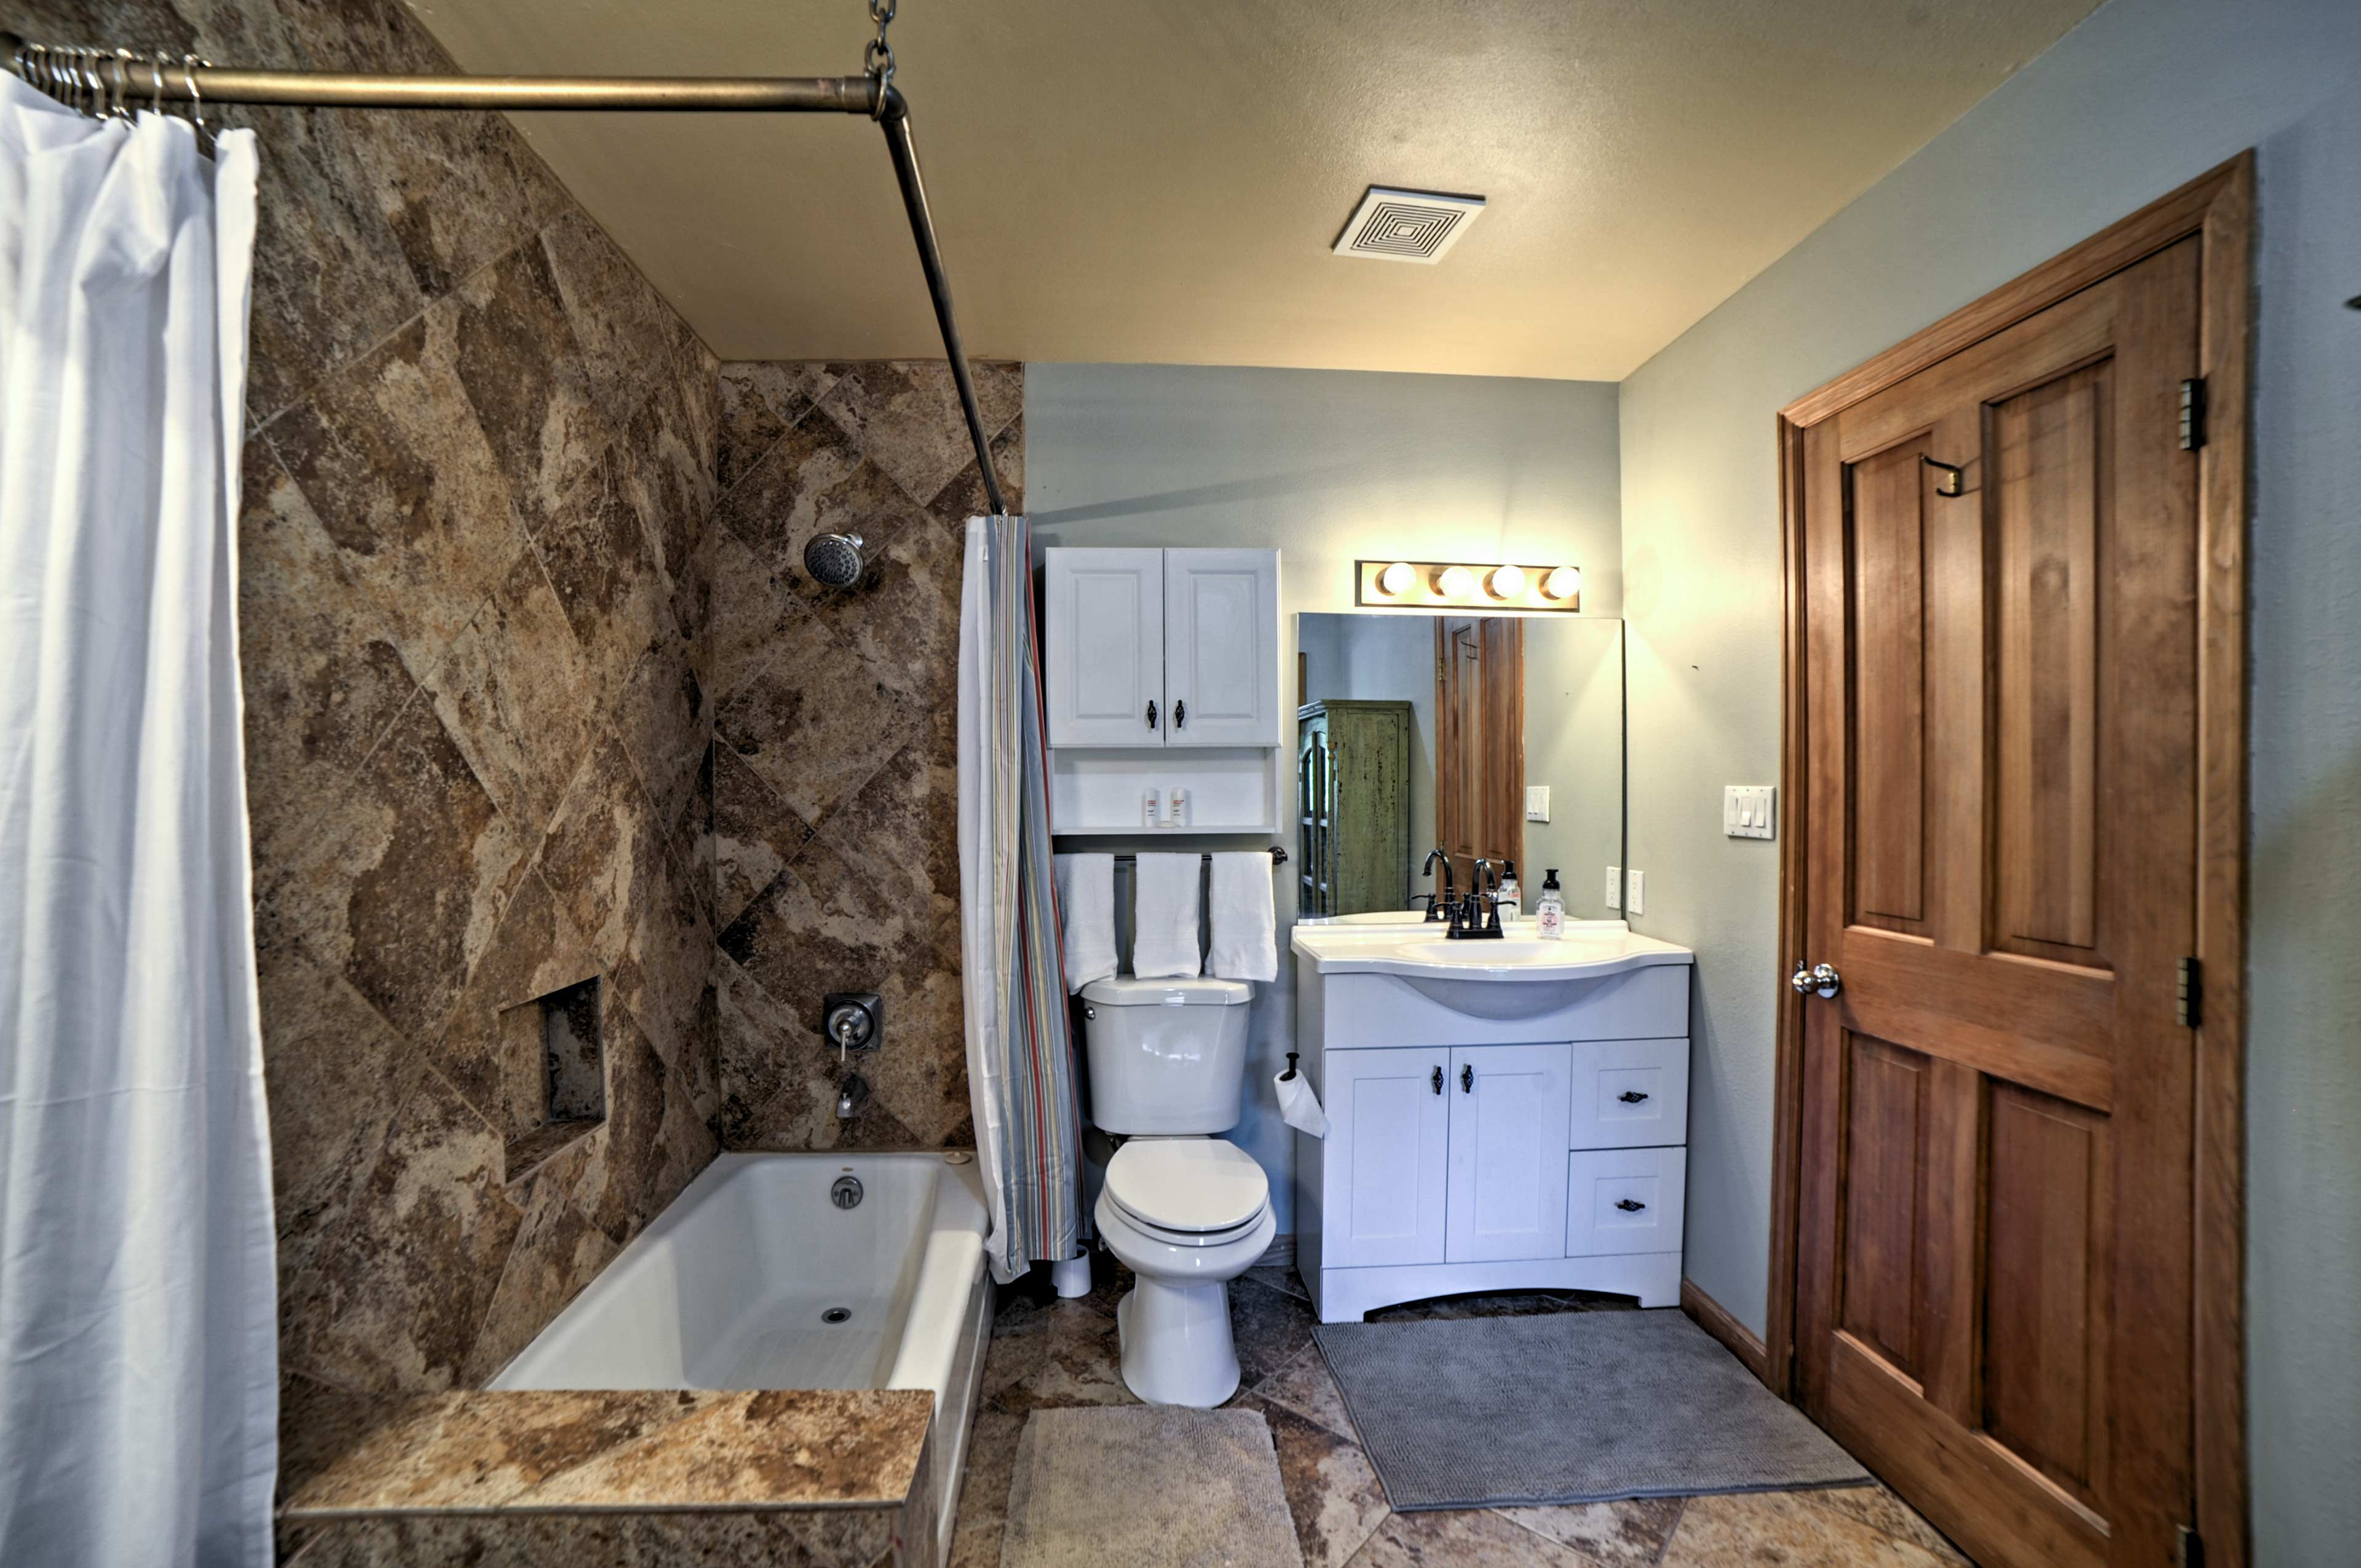 Rinse off in the updated tub/shower combo.